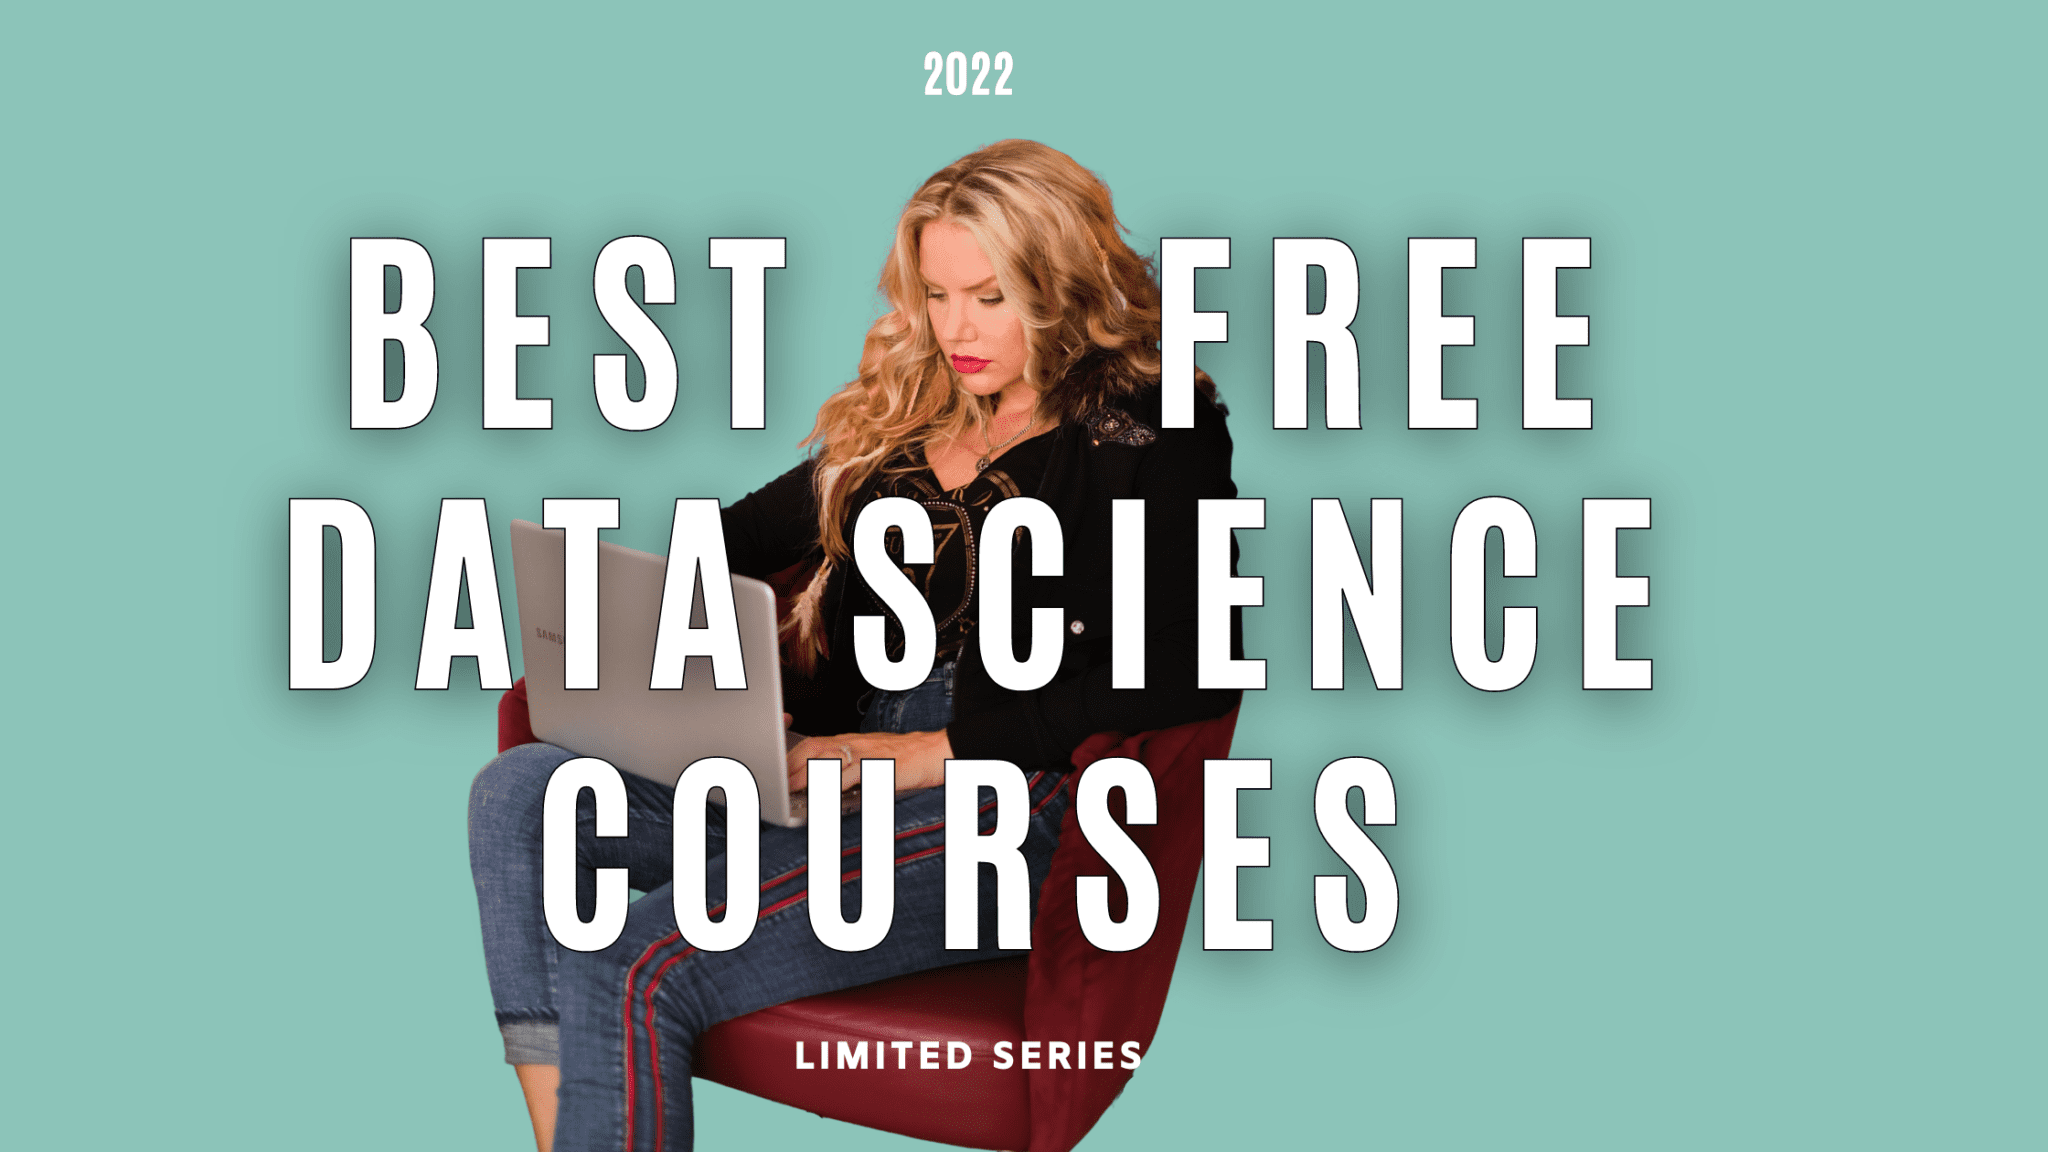 Best Free Data Science Courses